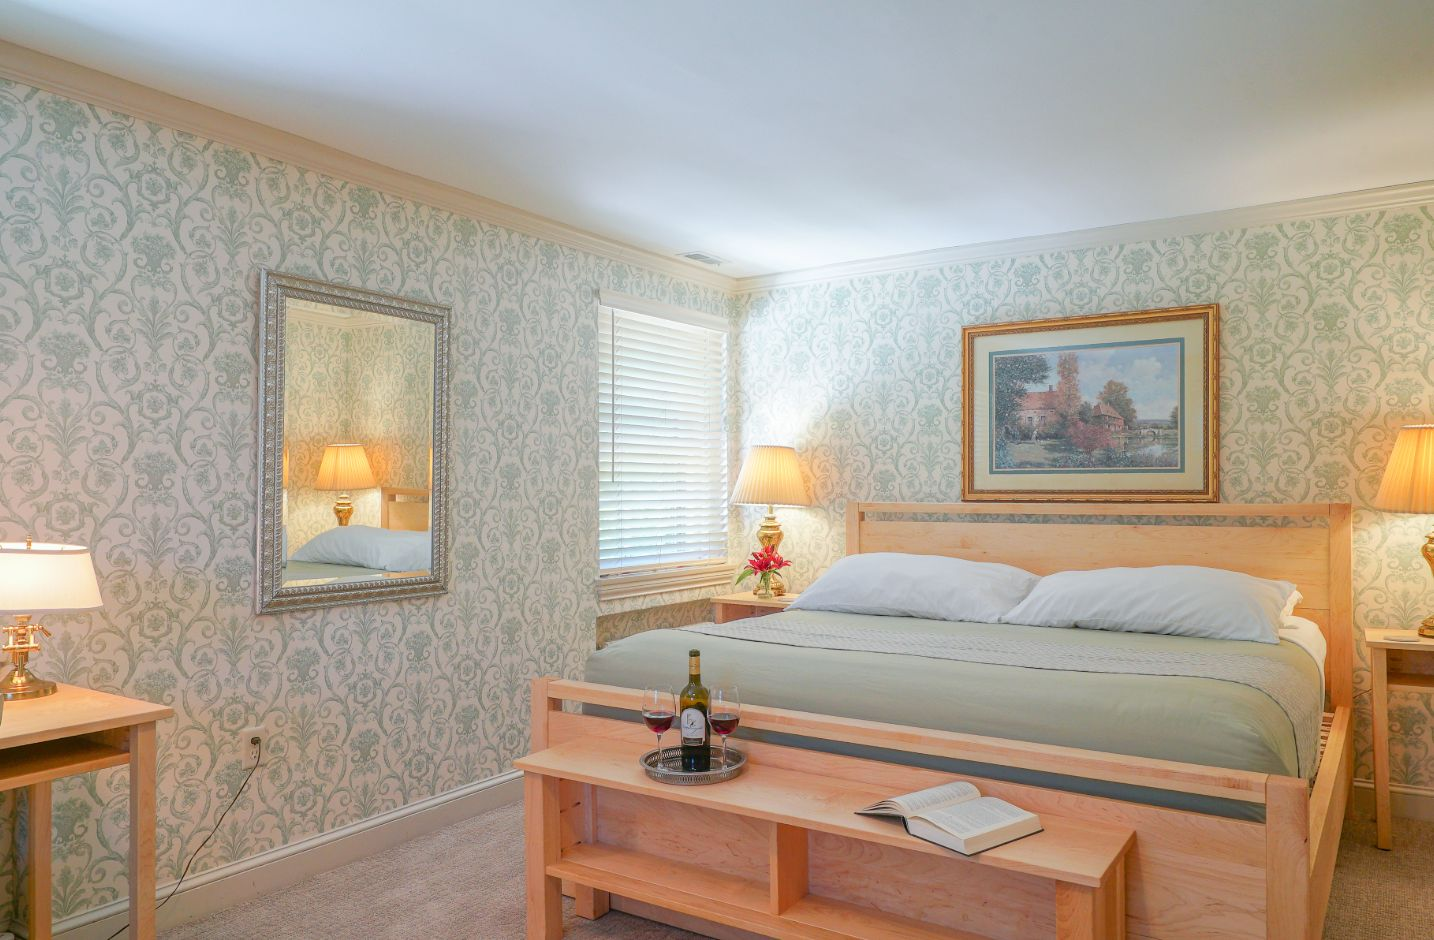 Roese Room bed at our Chesapeake Bay bed and breakfast